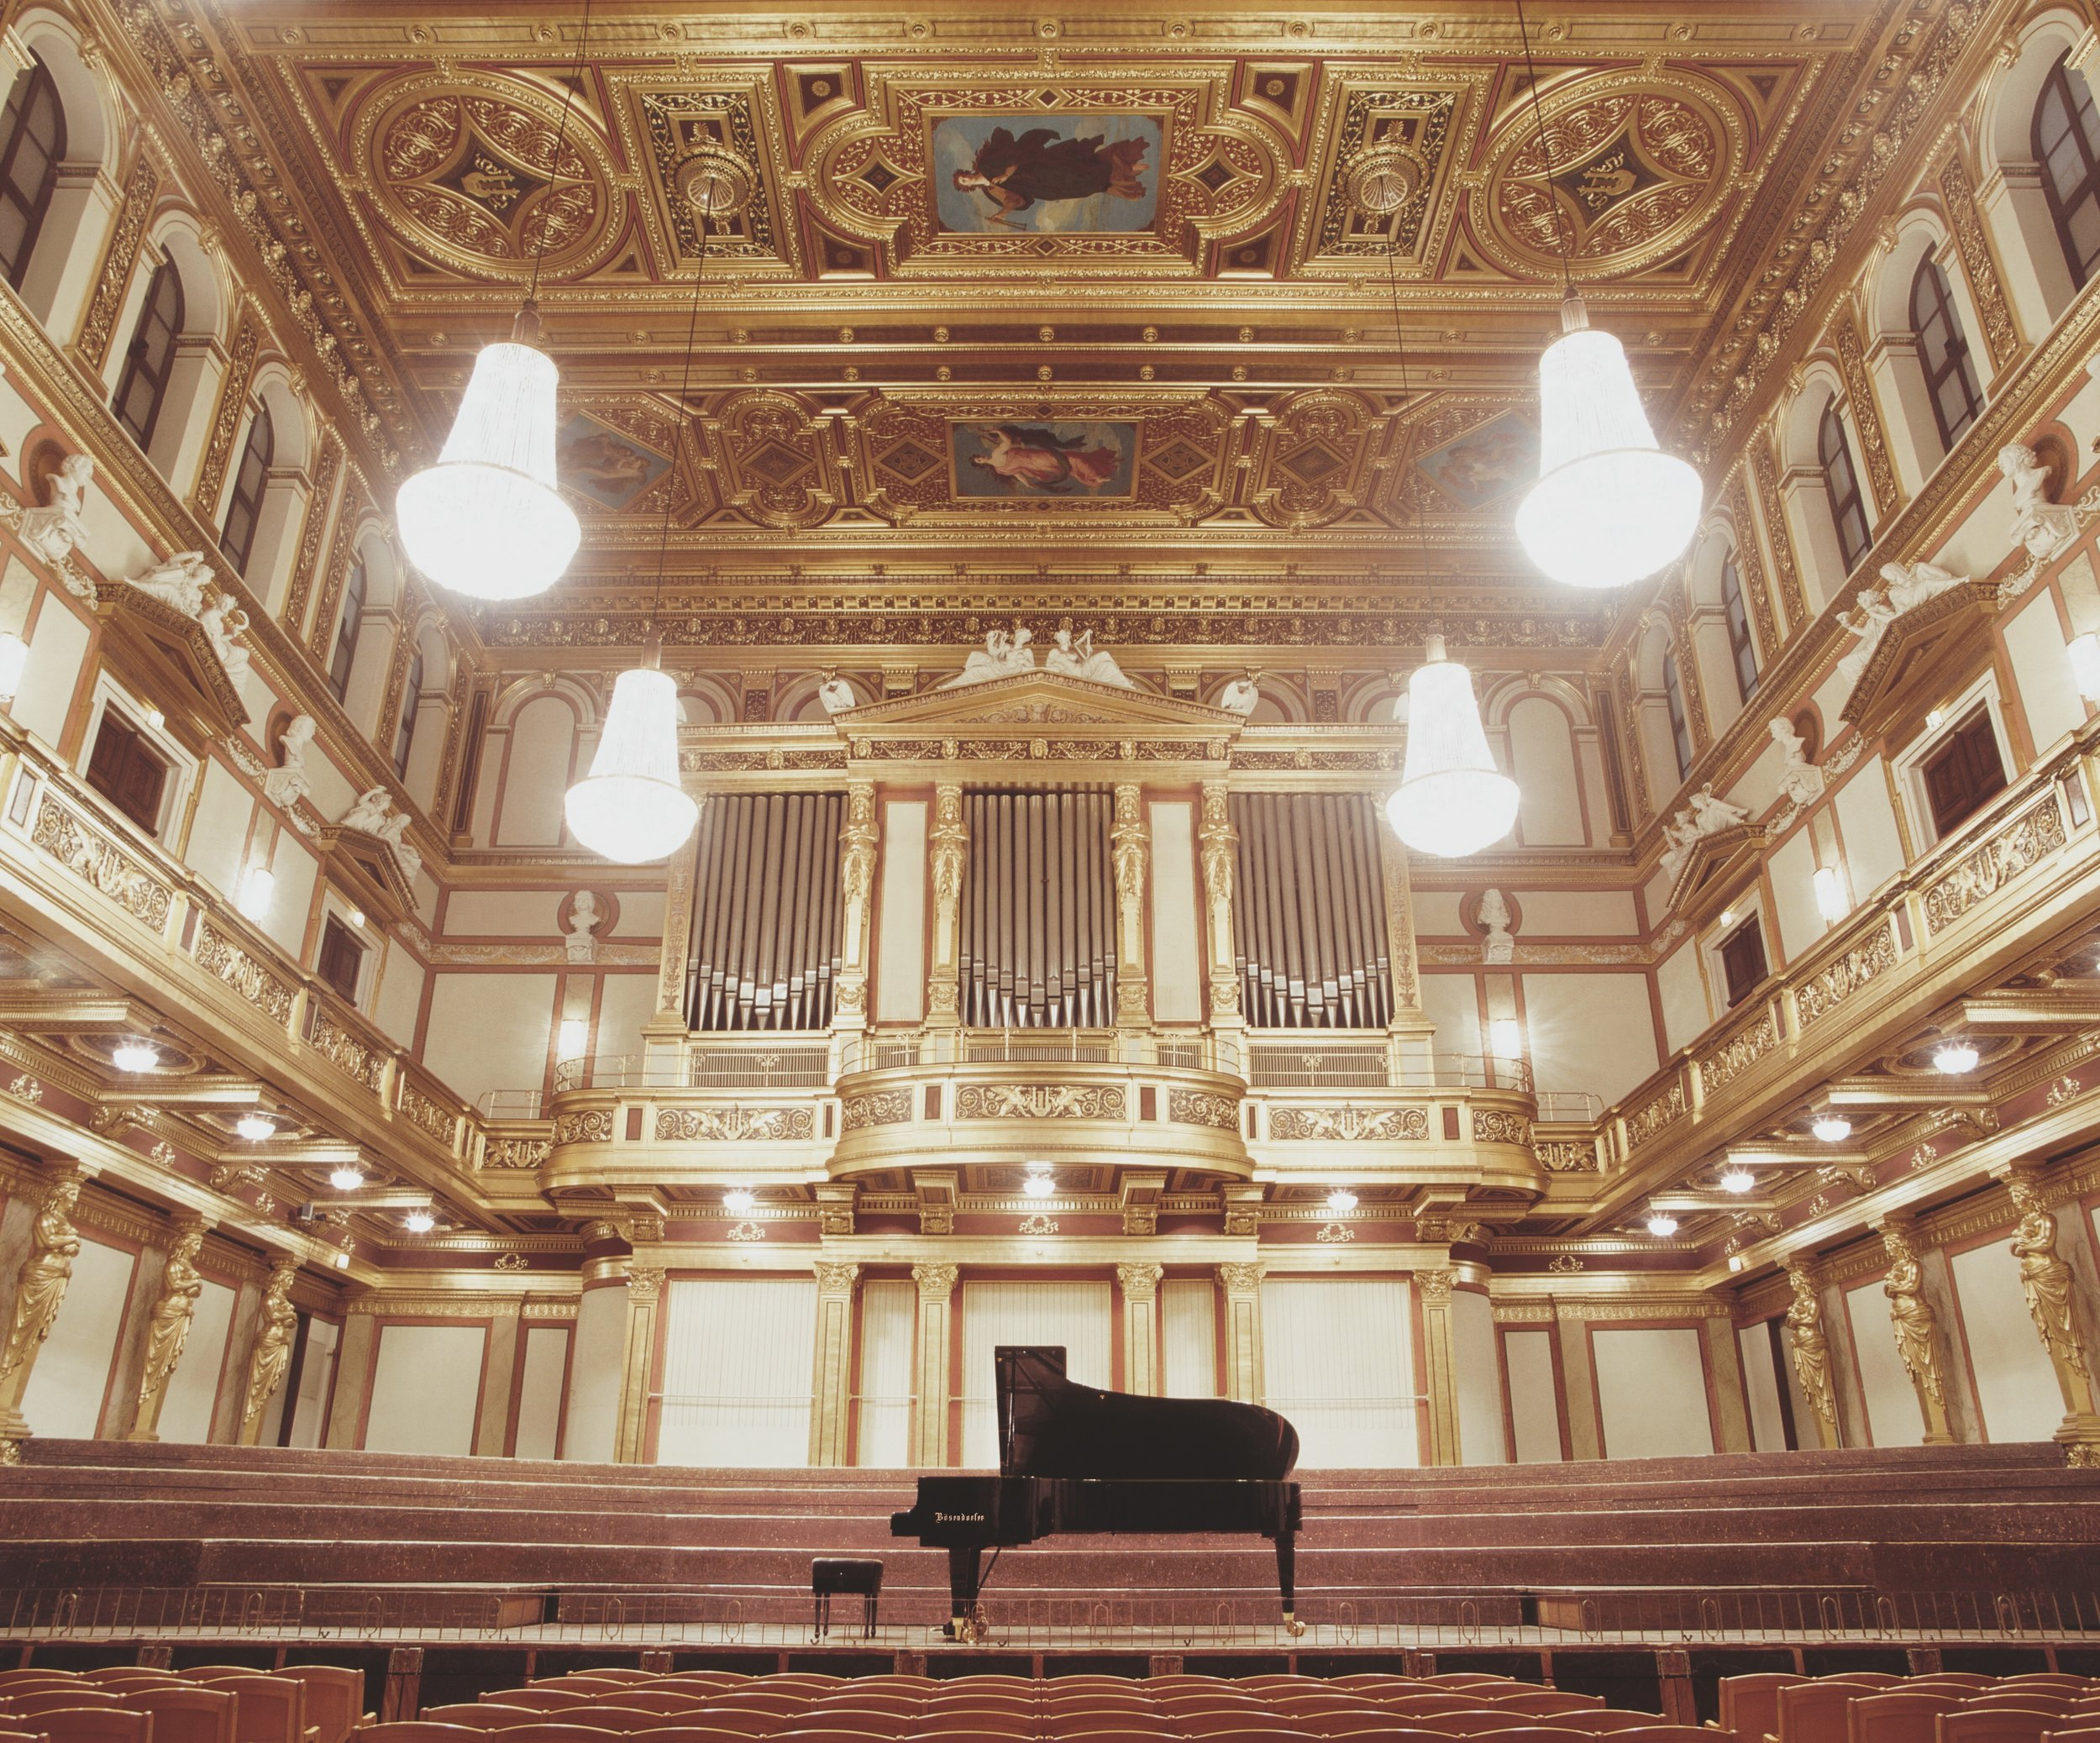 Bösendorfer piano in Musikverein